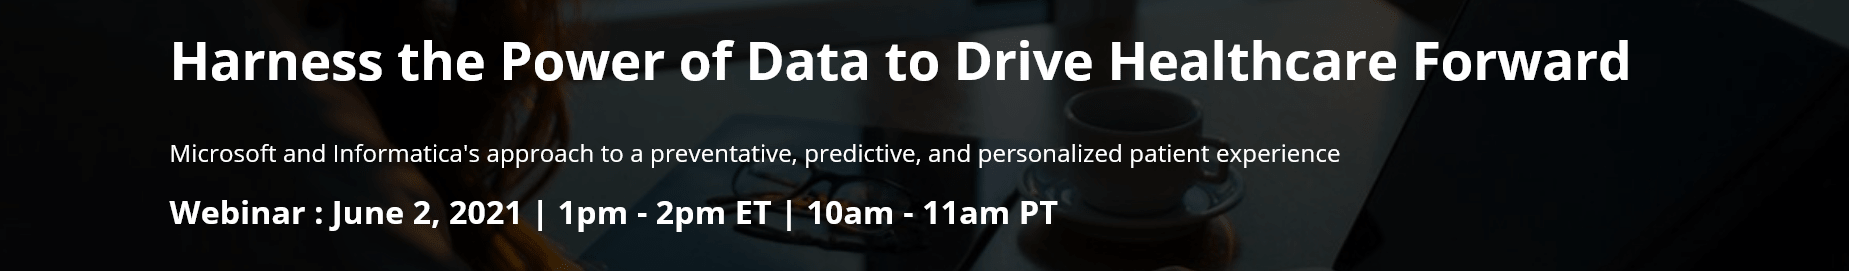 Harness the Power of Data to Drive Healthcare Forward -TechProspect Harness the Power of Data to Drive Healthcare Forward -TechProspect